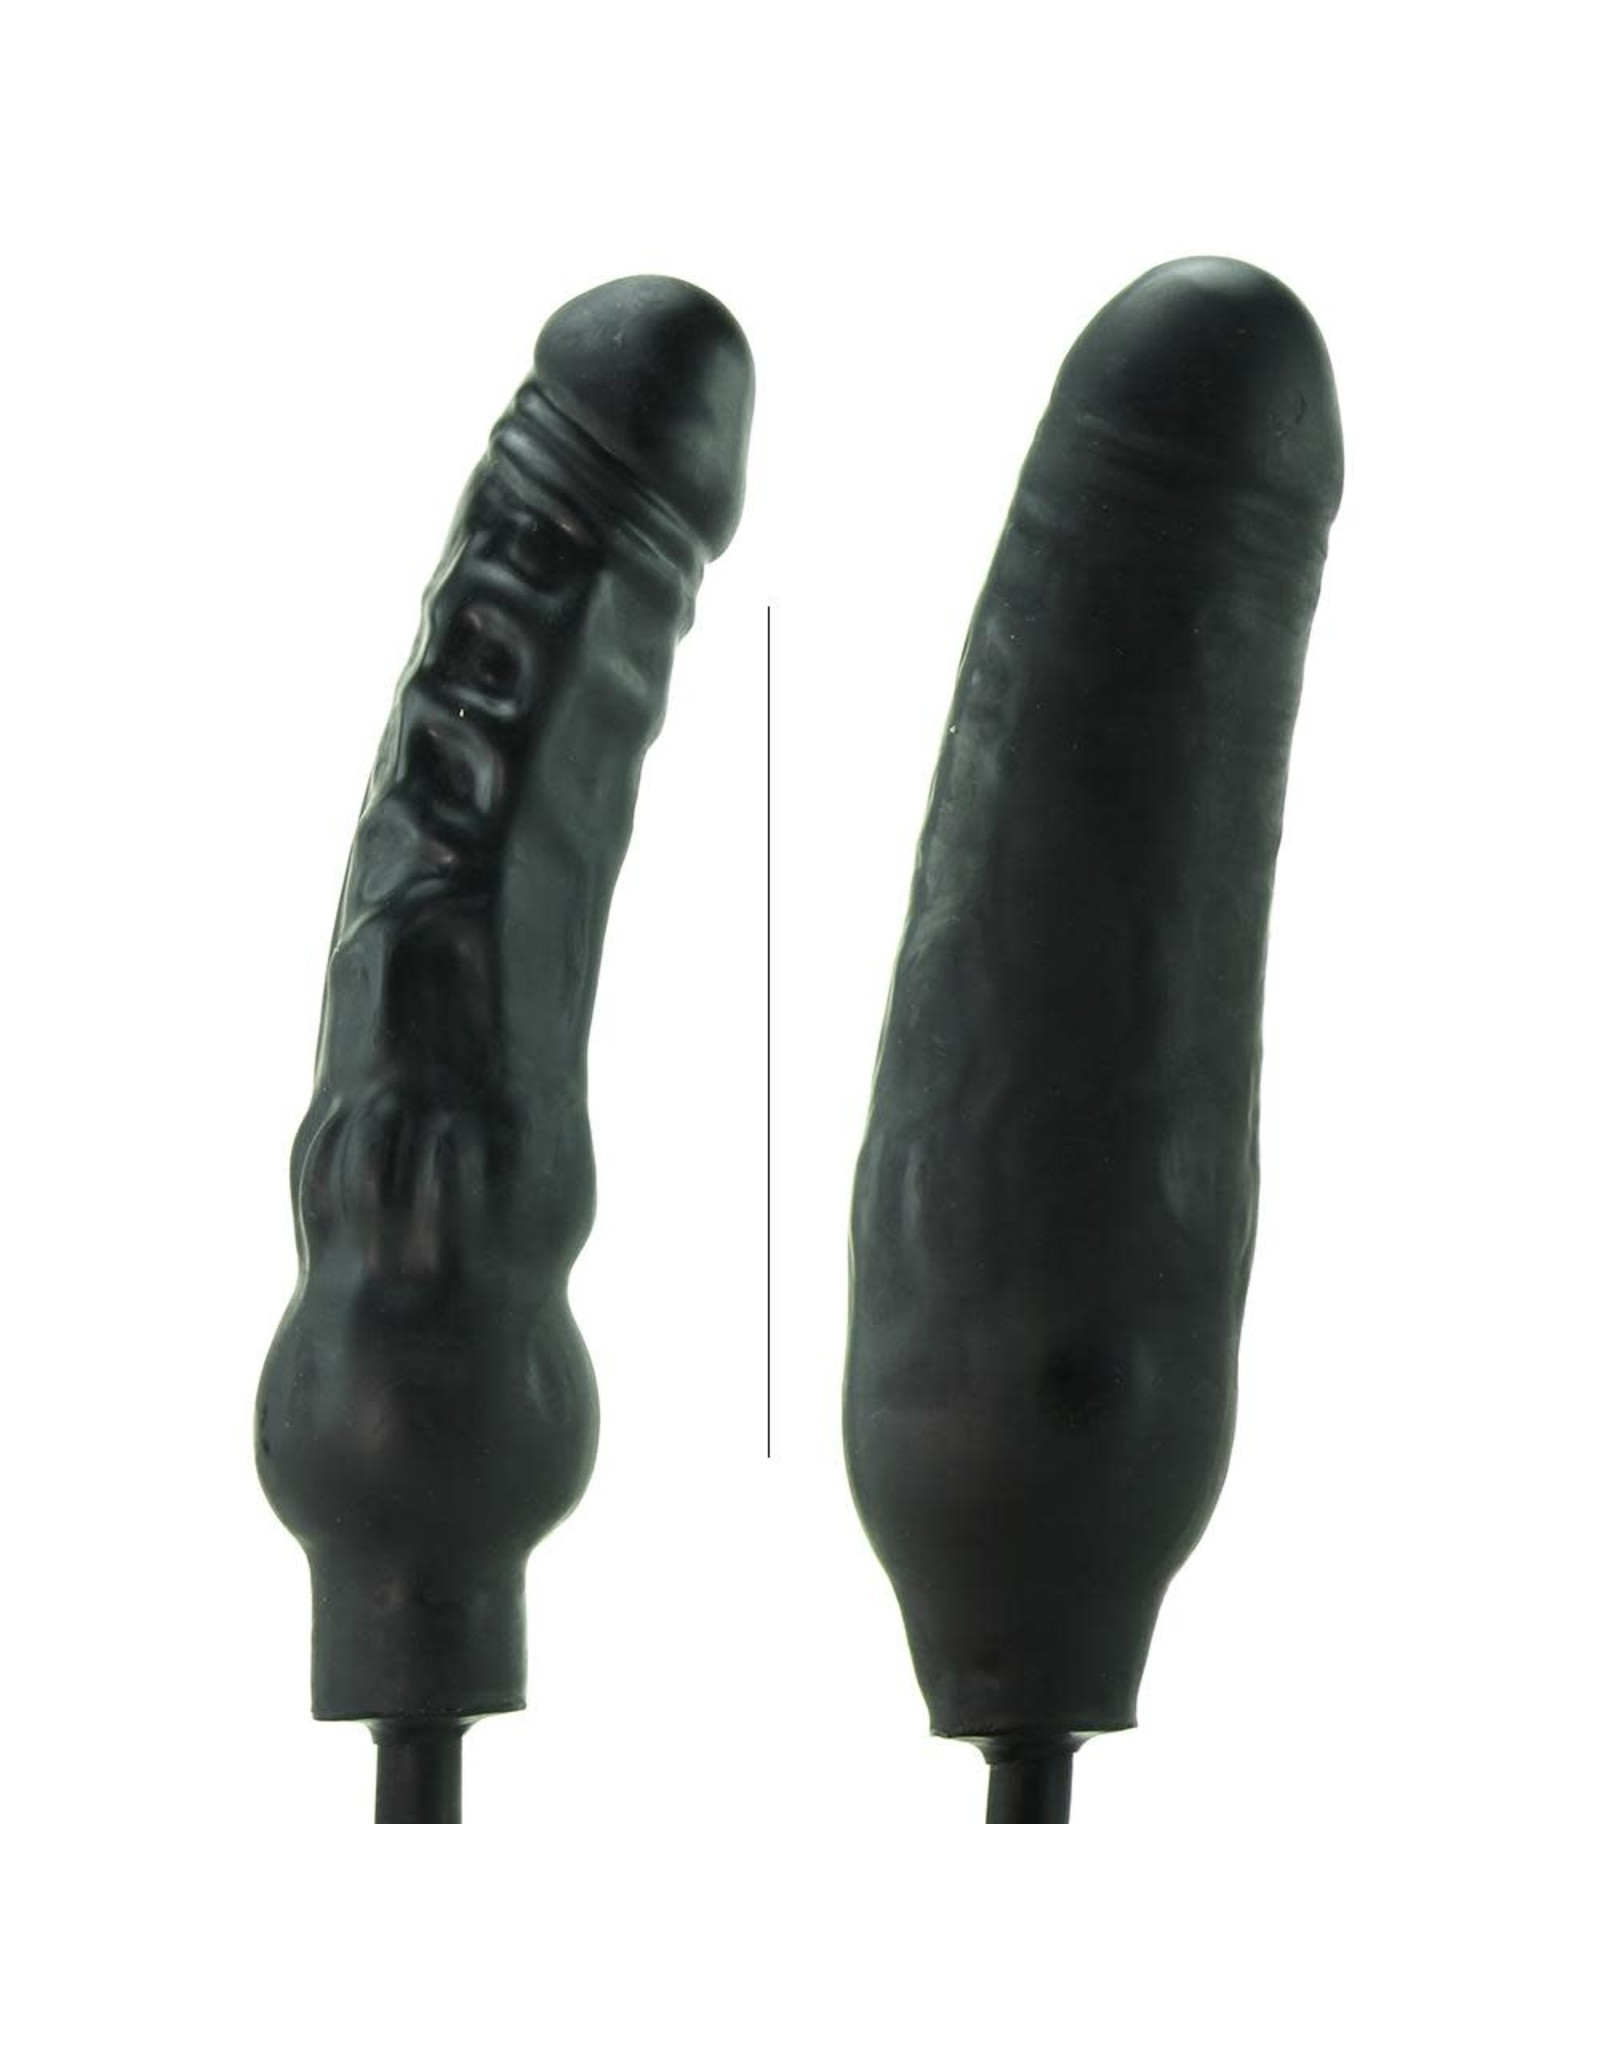 MASTER SERIES - PRIMAL - INFLATABLE DONG